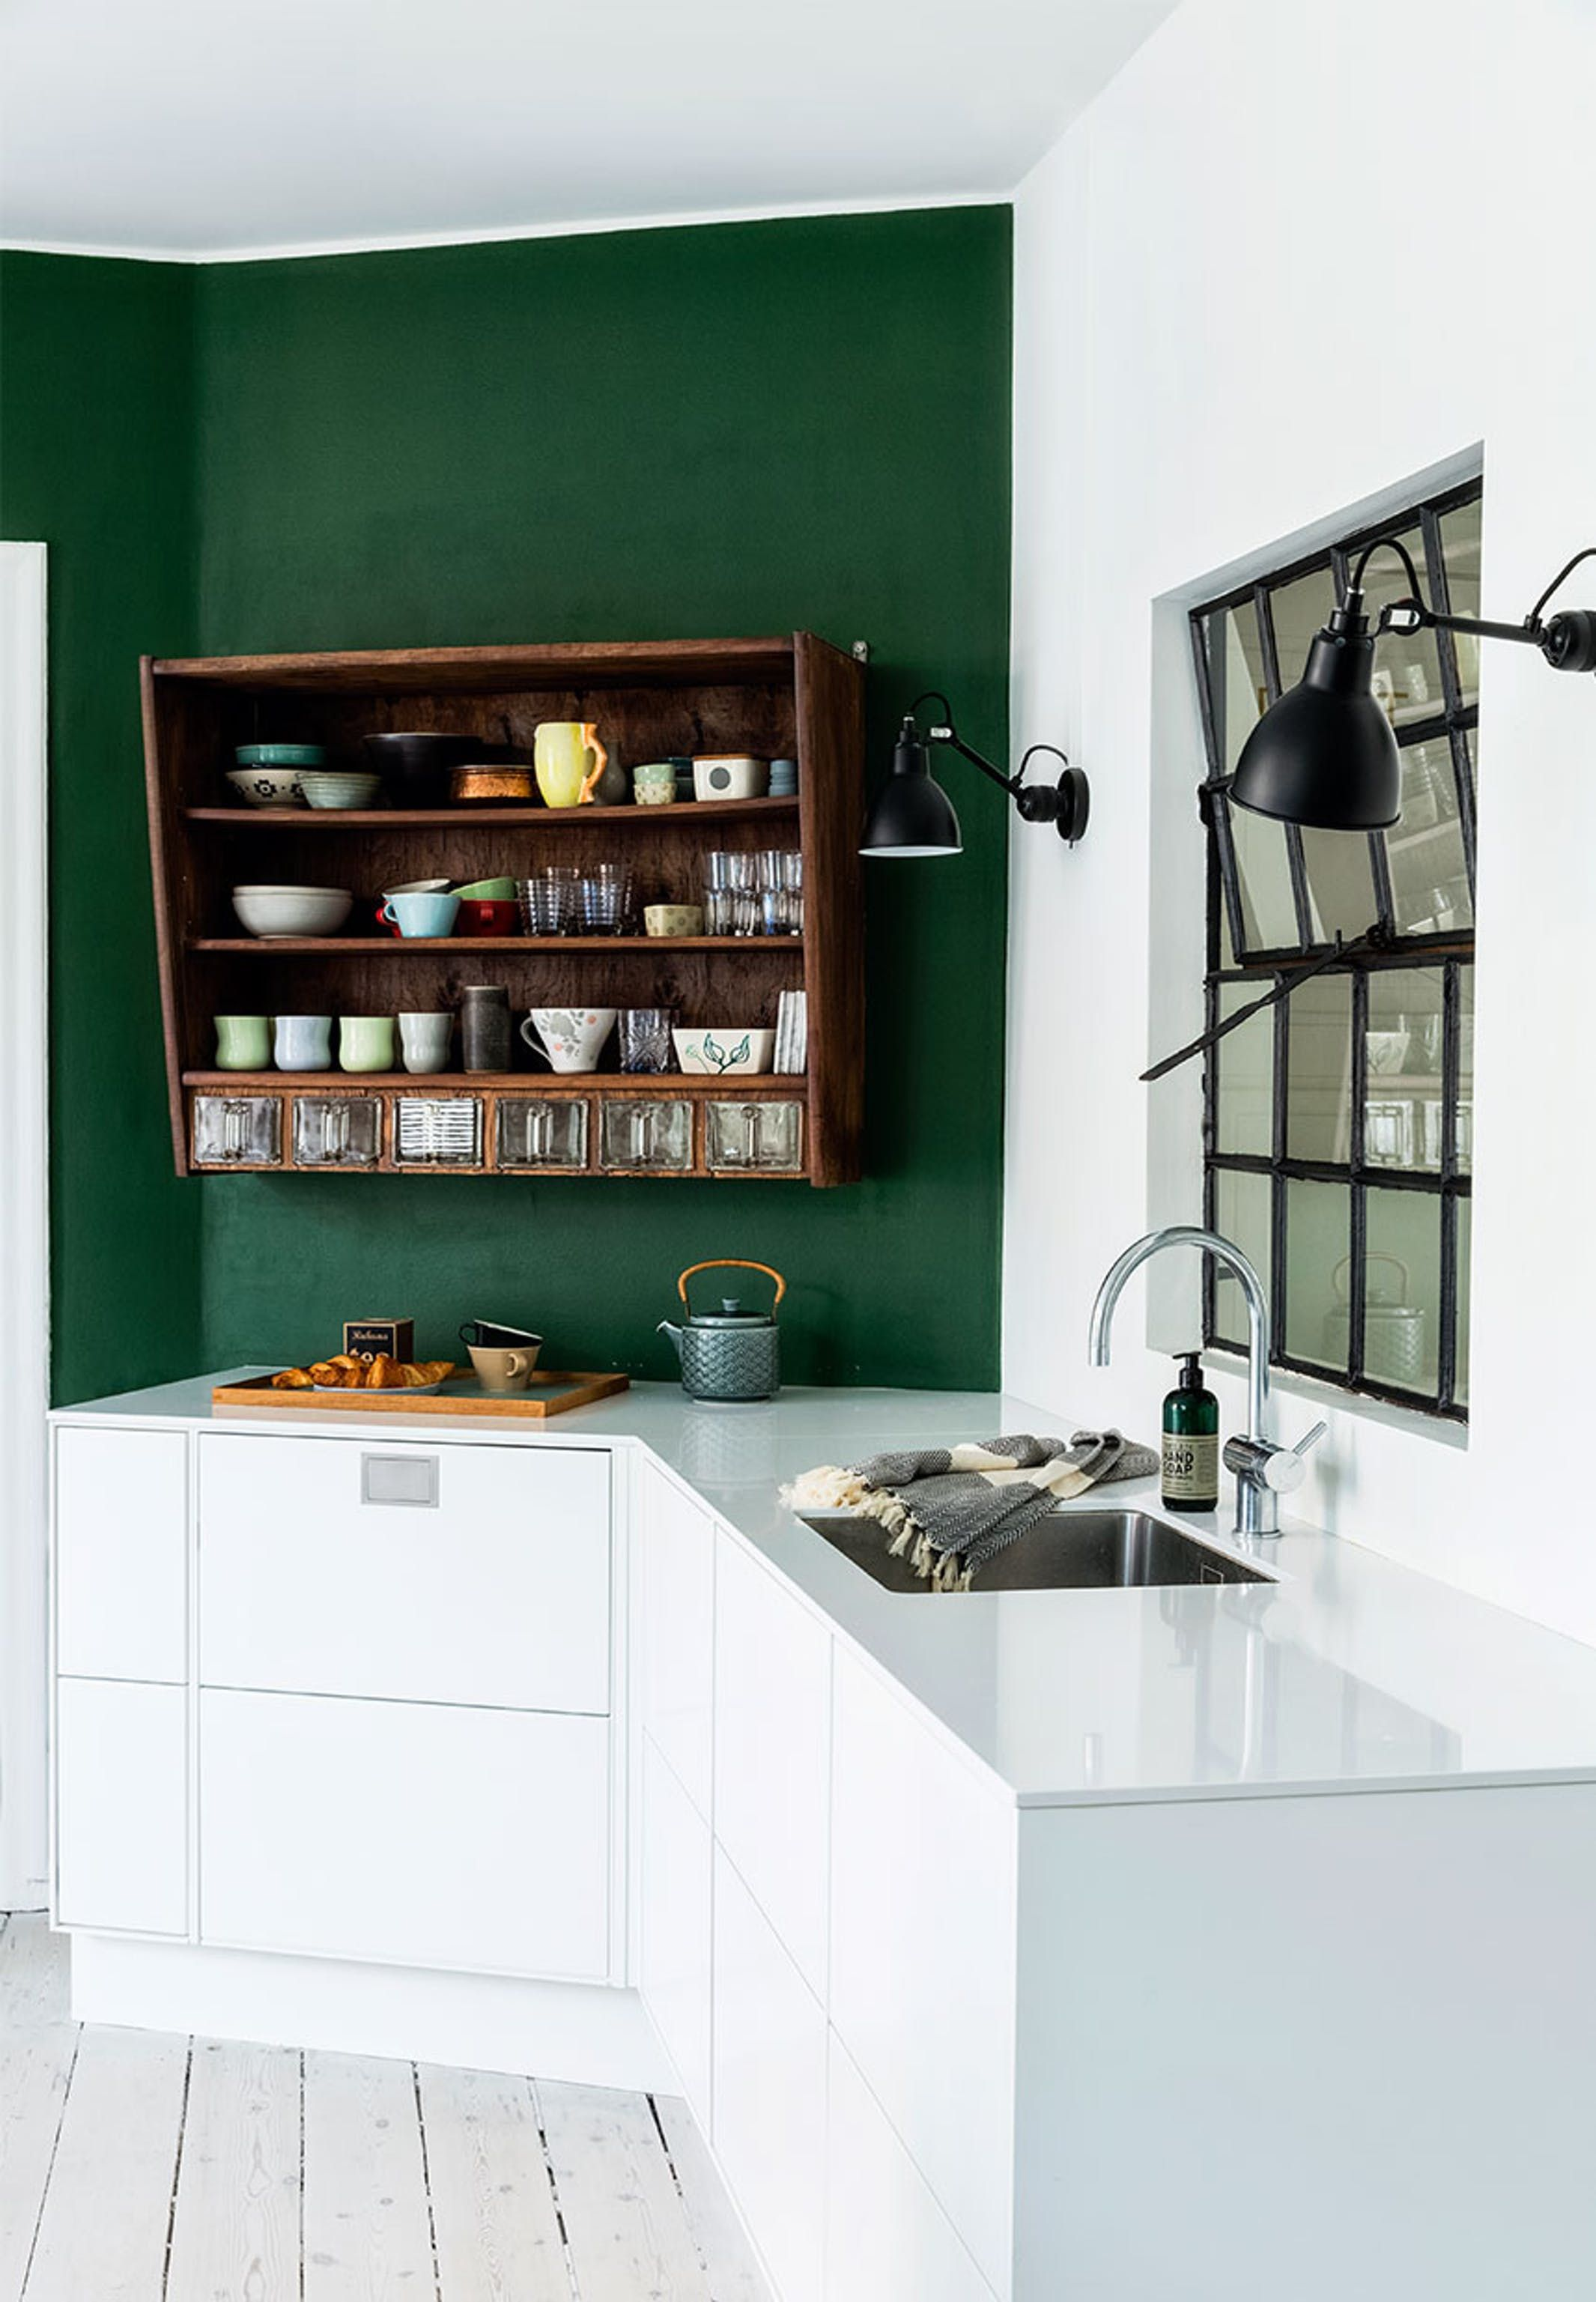 Küche Vintage Look Vintage Look With A Green Colored Wall Interior Inspiration